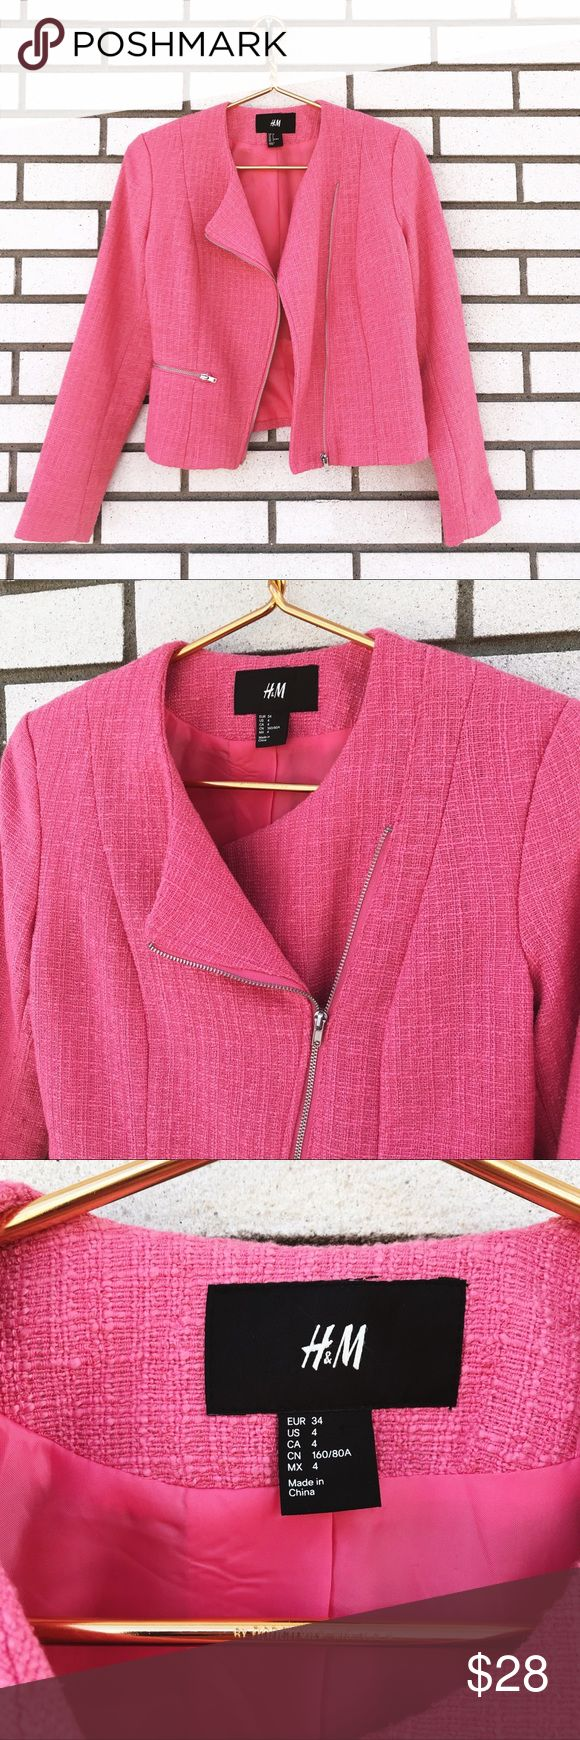 H&M Woven Pink Zip Up Blazer H&M Woven Pink Zip Up Blazer Bubblegum pink blazer jacket. Angled off center exposed zipper. Non functional zipper pocket detail. Woven fabric. Fully lined. Size 4. Excellent used condition. H&M Jackets & Coats Blazers